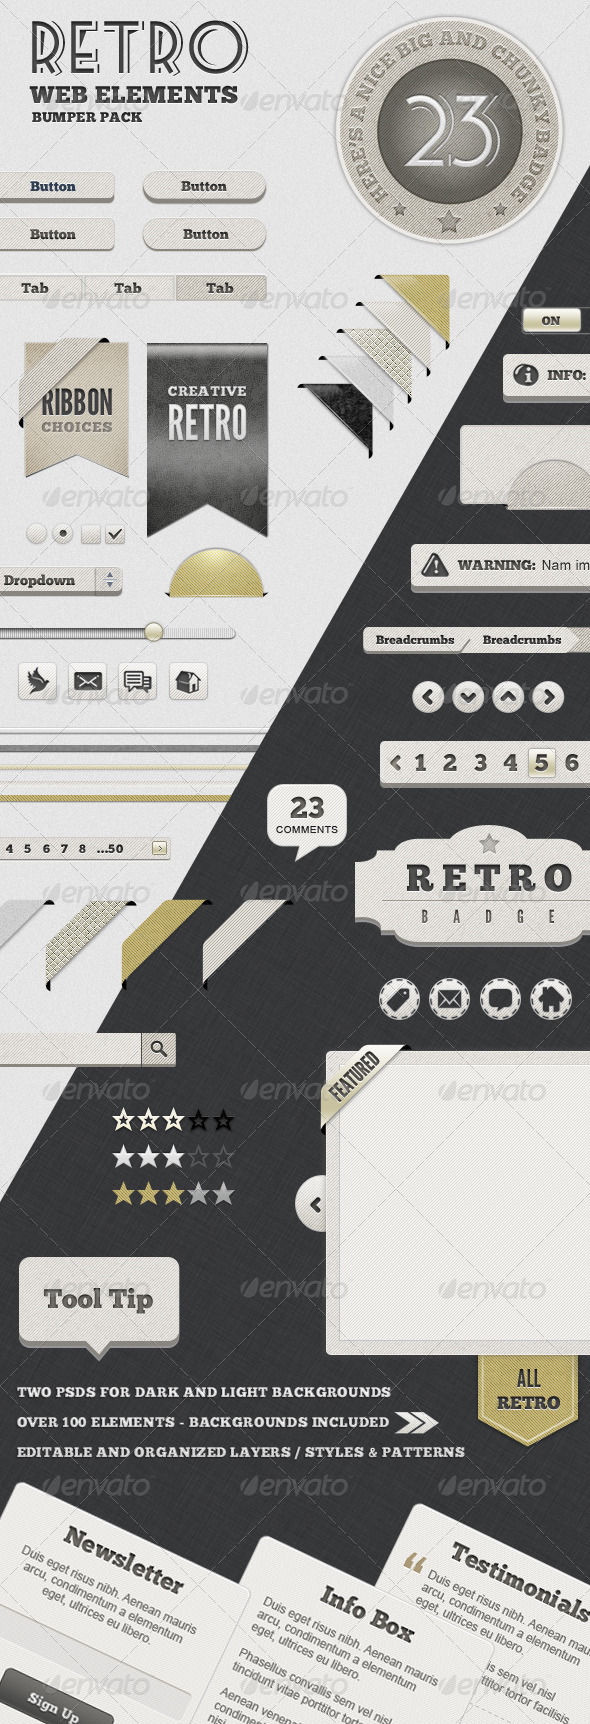 Retro Web Elements - Bumper Pack - Miscellaneous Web Elements